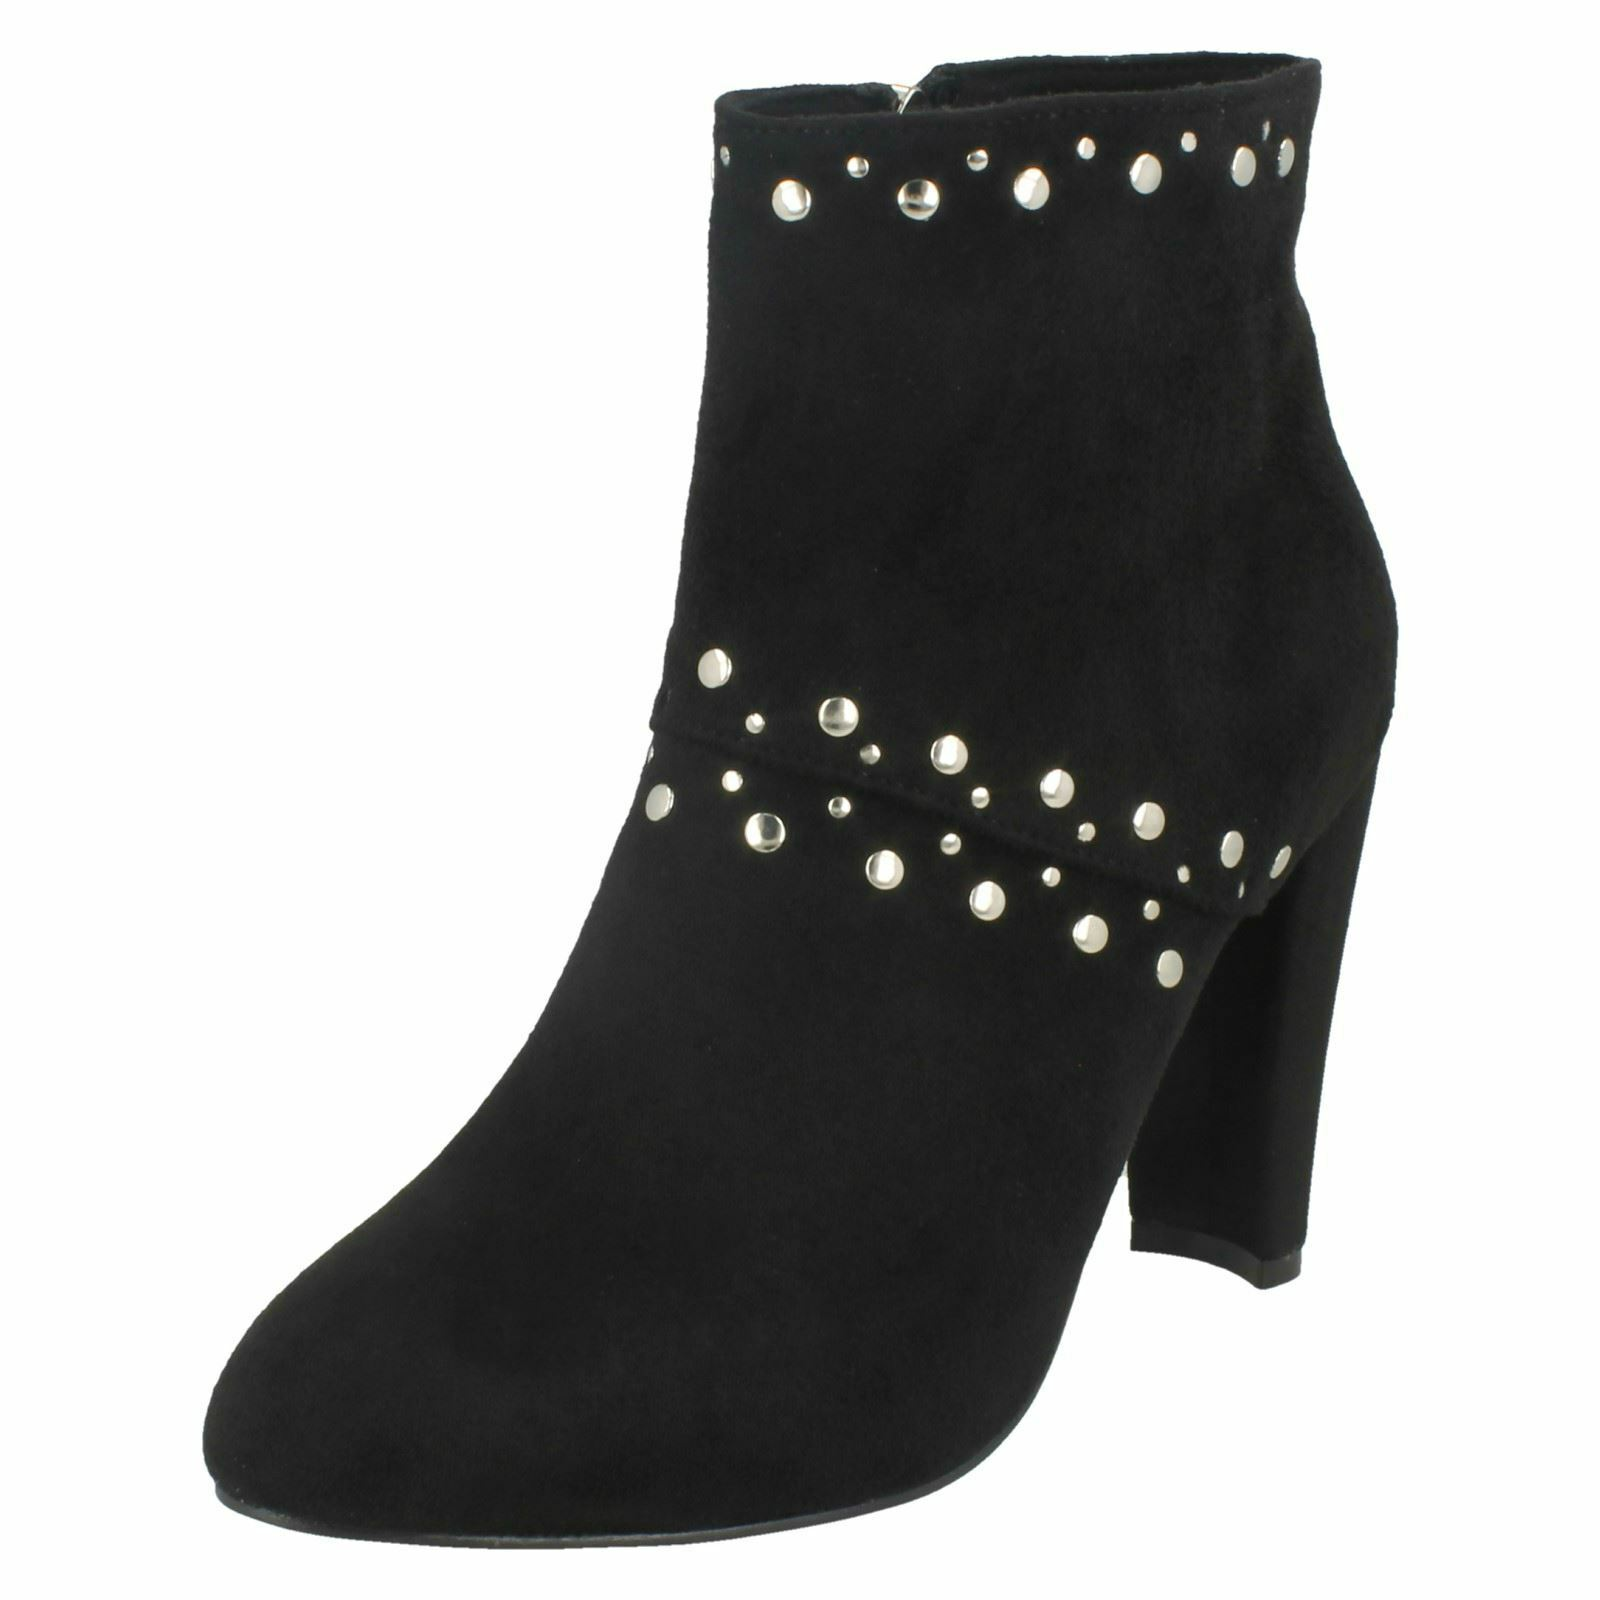 ad7cffd2af1 Ladies Studded Trim Ankle Boots Anne Michelle nqorbq3124-Women's ...